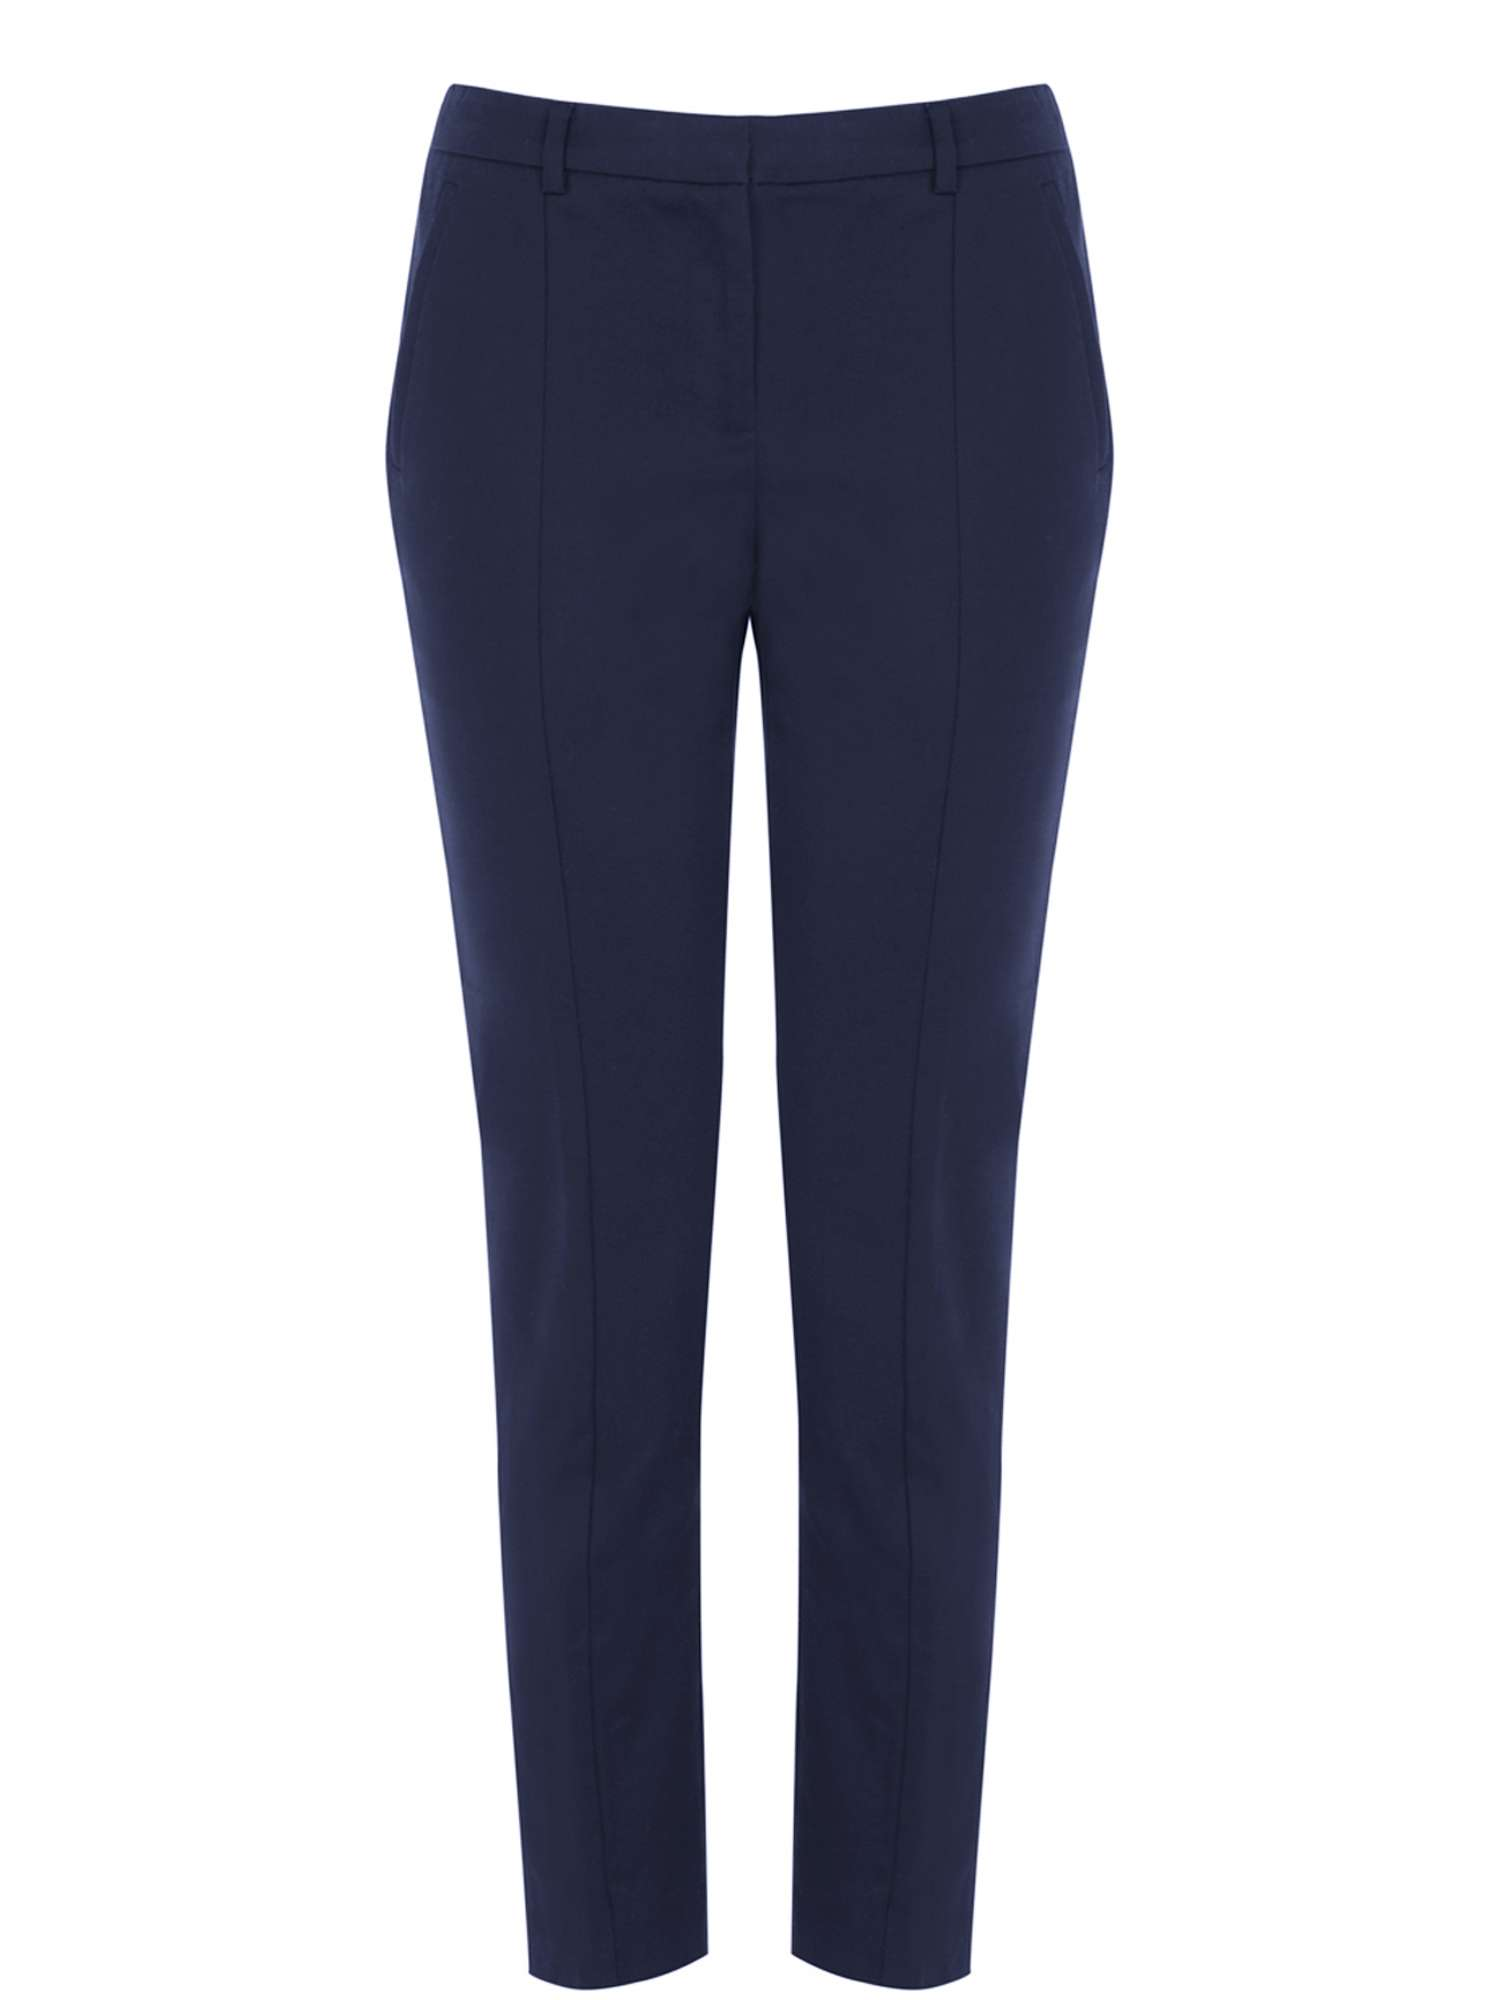 Compact Trousers Oasis Compact Oasis Cotton Cotton Trousers Oasis SaaxZO